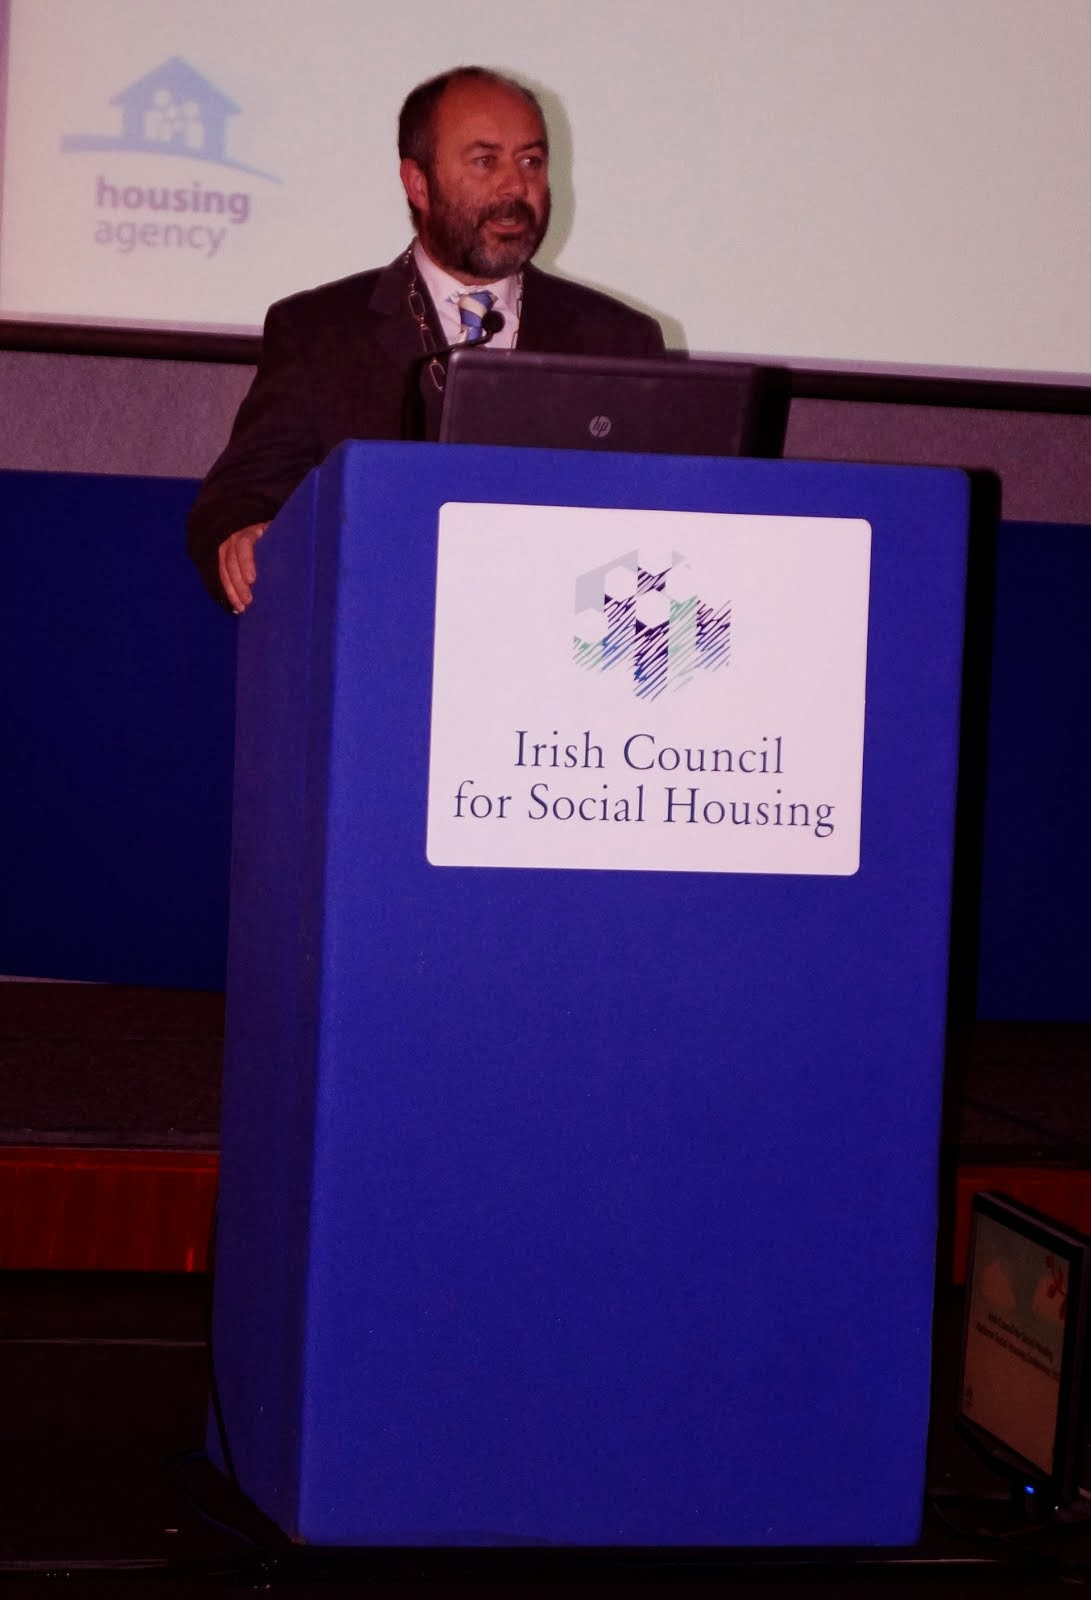 Speaking at the National Conference of Irish Council for Social Housing